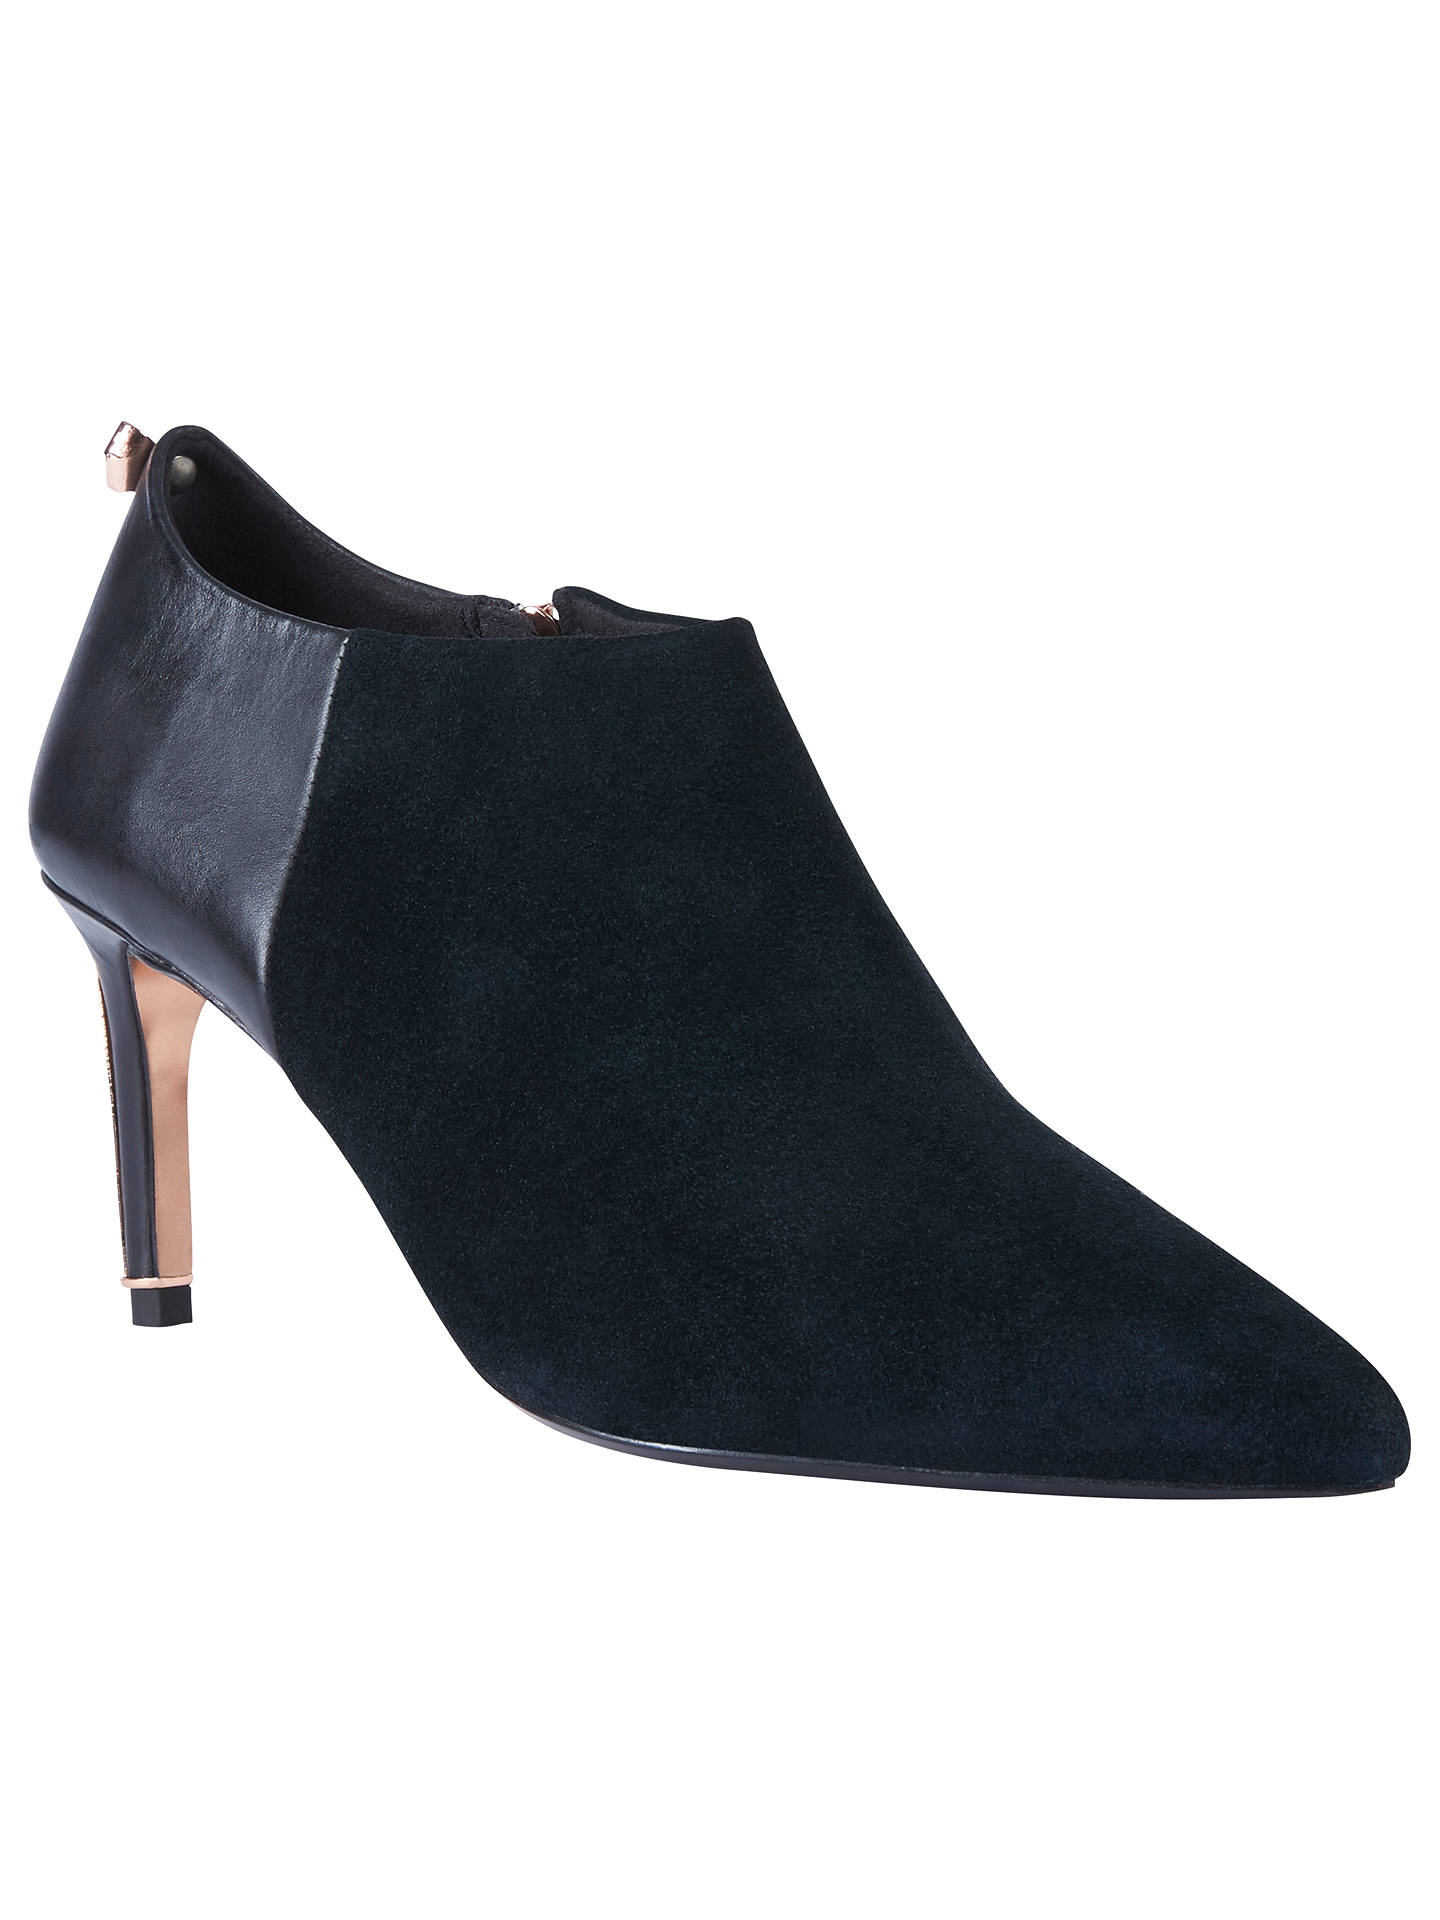 BuyTed Baker Akashers Stiletto Heel Ankle Boots, Black, 4 Online at johnlewis.com